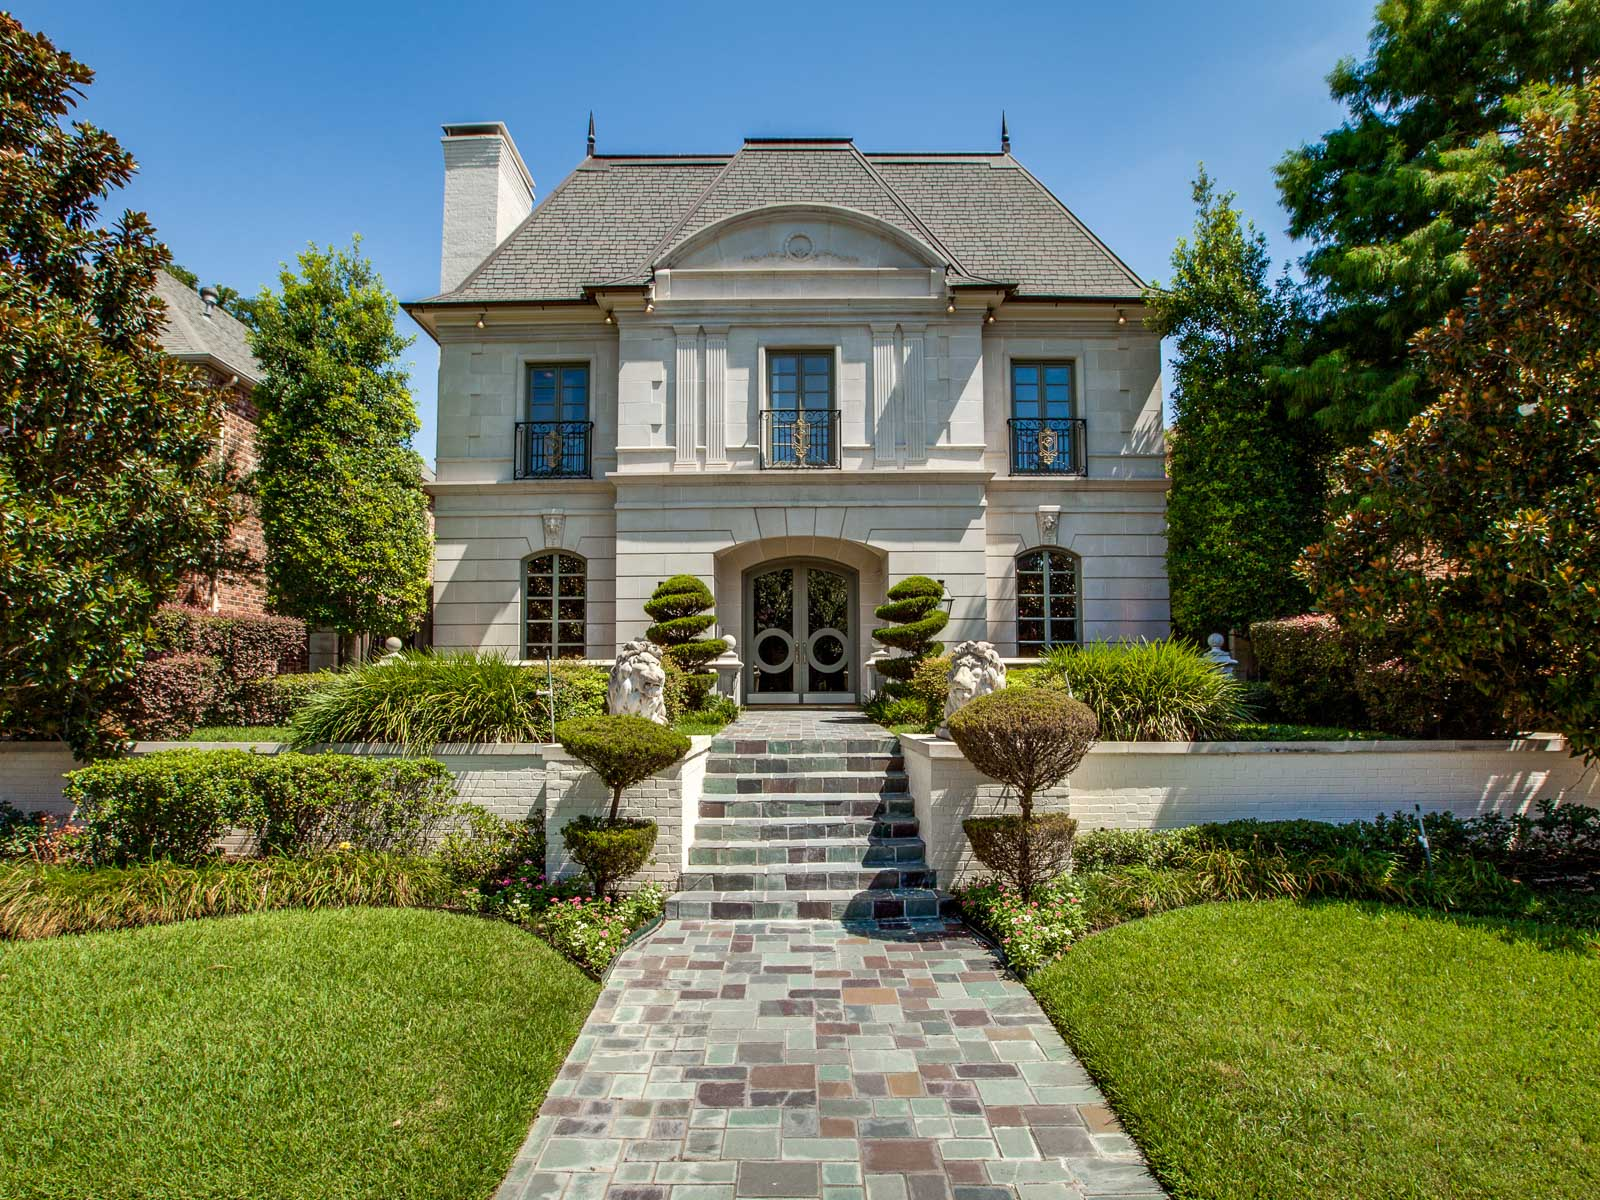 Single Family Home for Sale at French Inspired Highland Park Home 3110 Drexel Drive Dallas, Texas 75205 United States